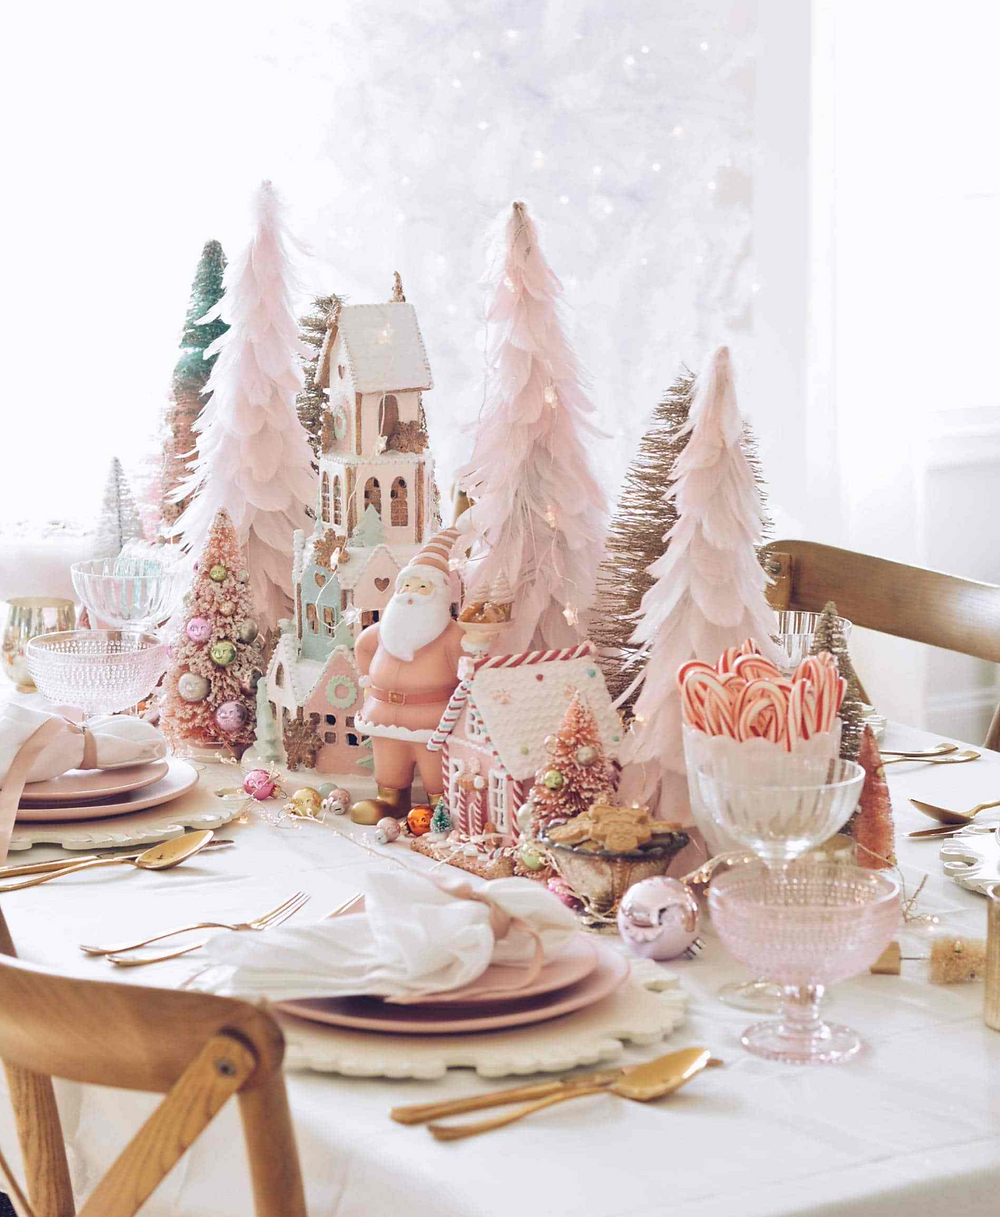 A whimsical Christmas tablescape decorated with blush feather trees, candy canes, Santa ornaments and pastel colors.